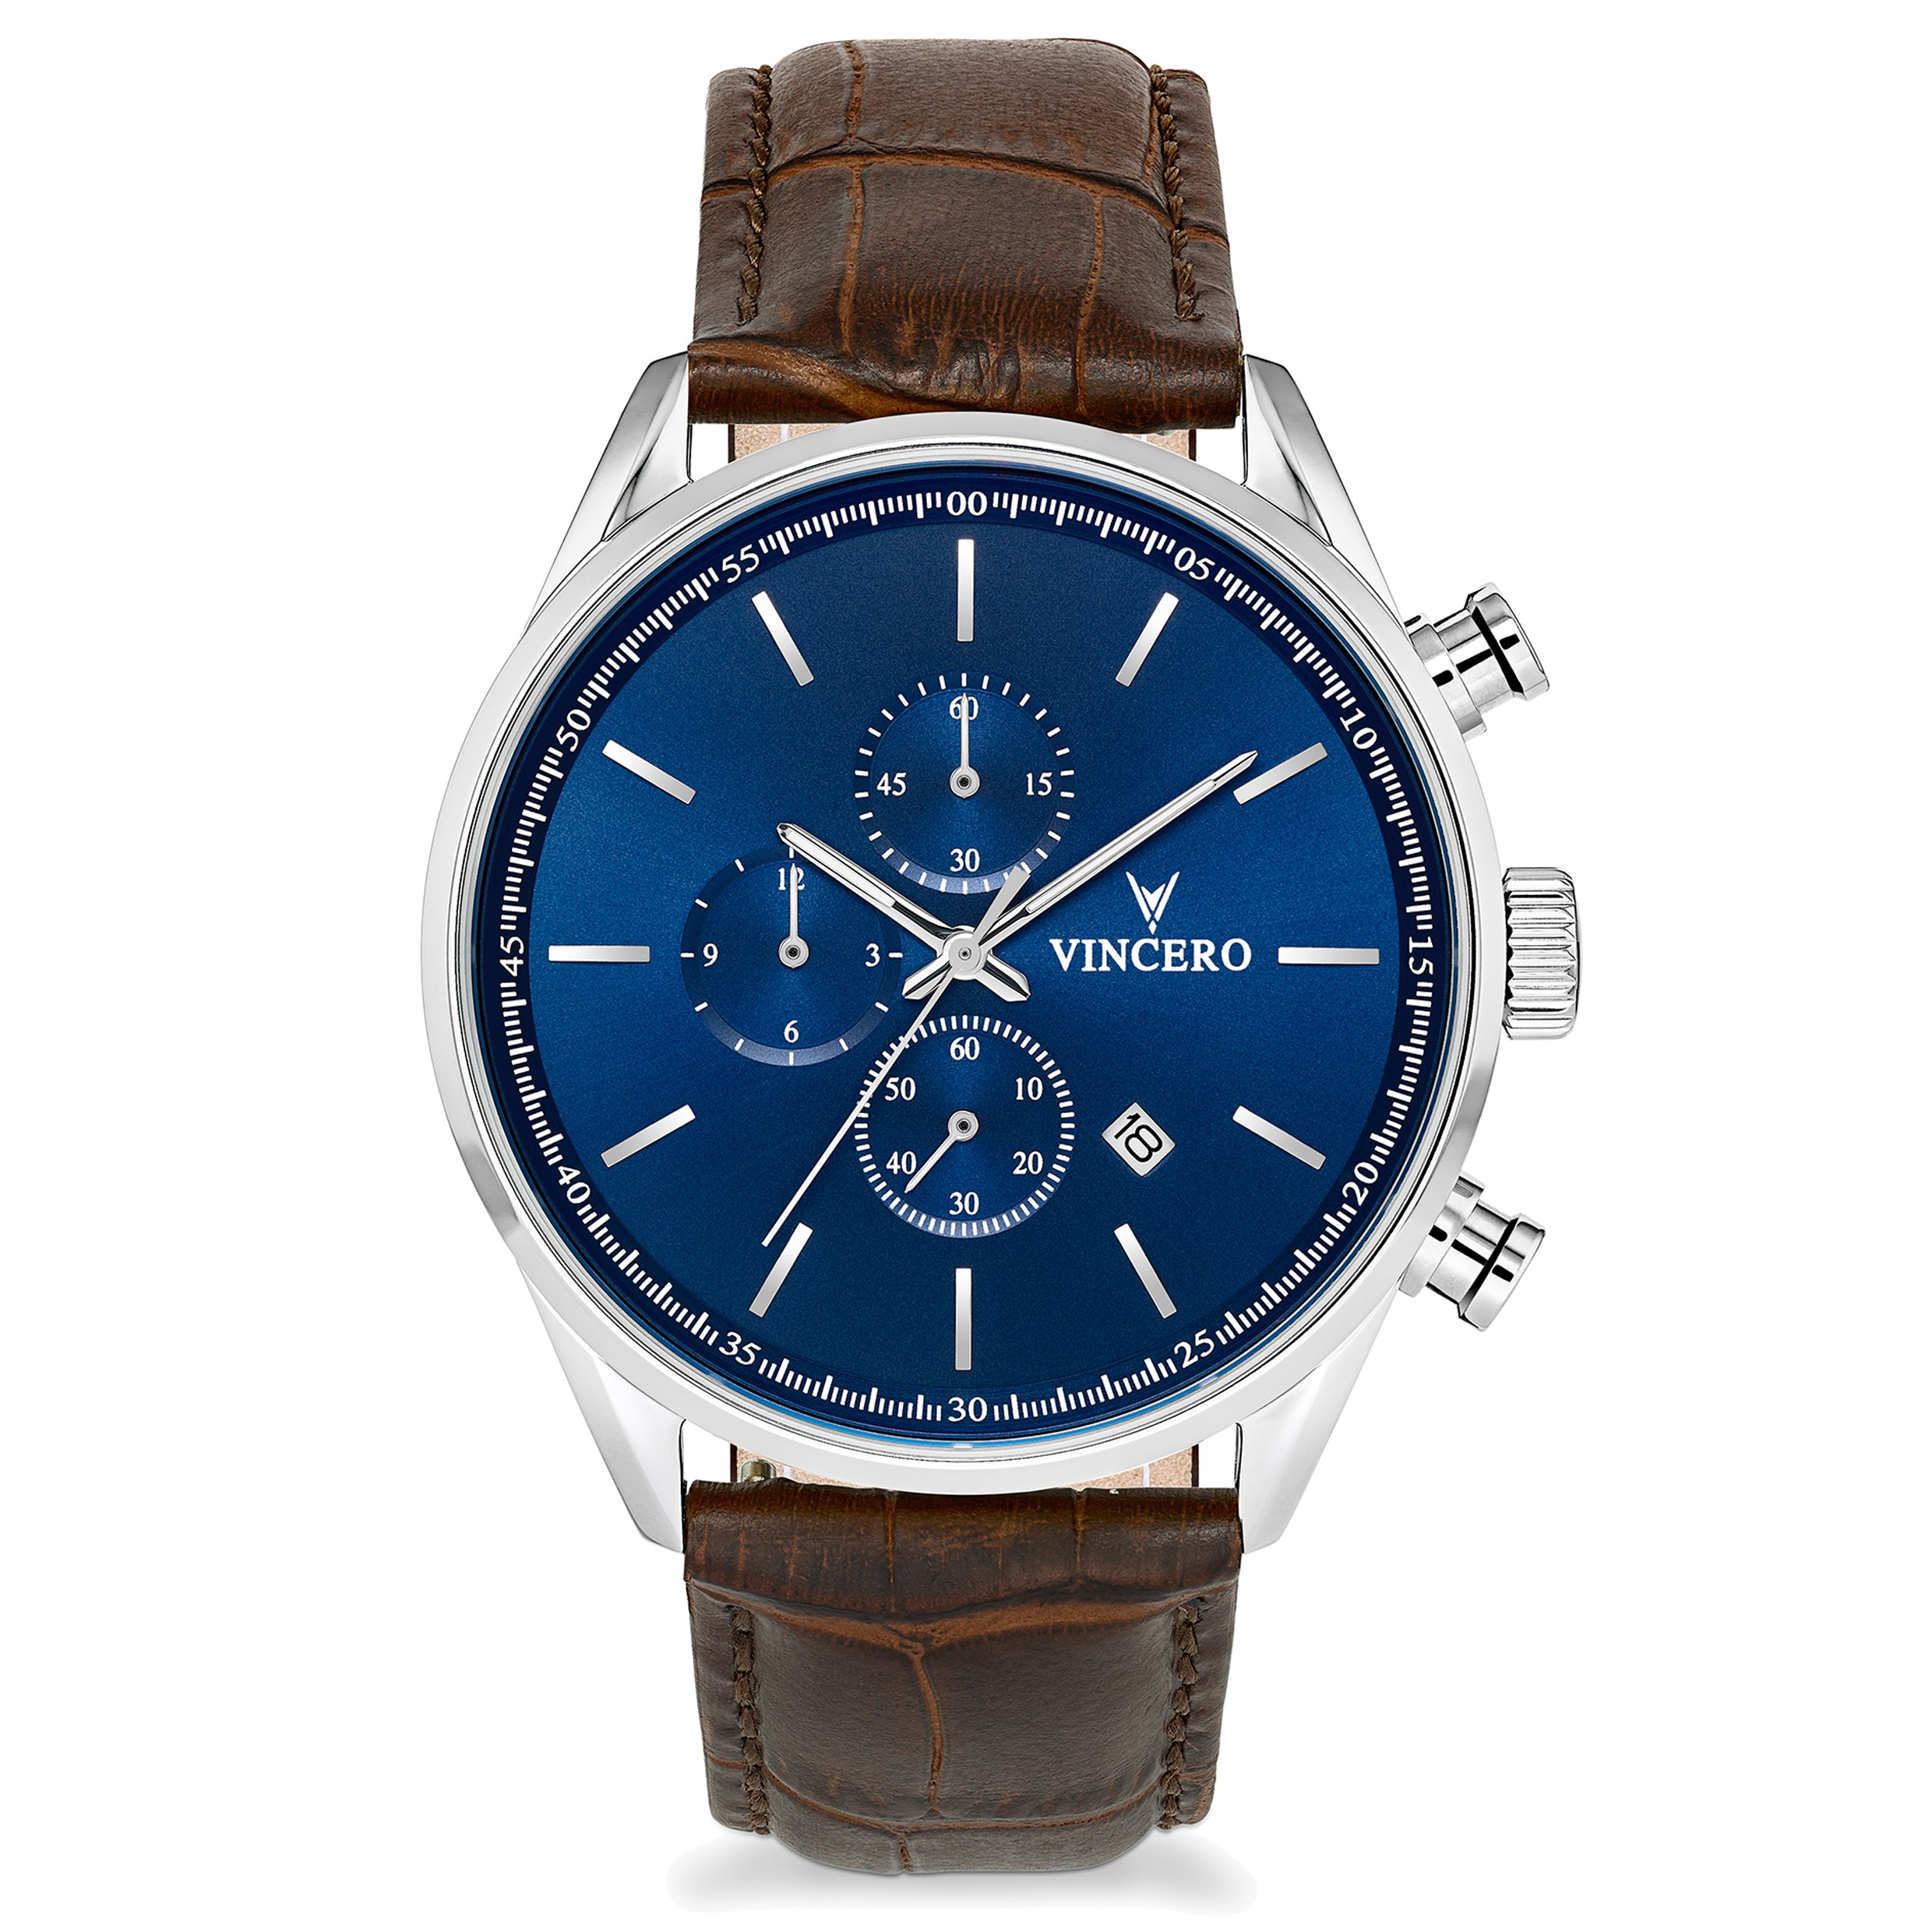 Vincero Men's Chrono S Watch - Blue/Brown with Leather Band by Vincero